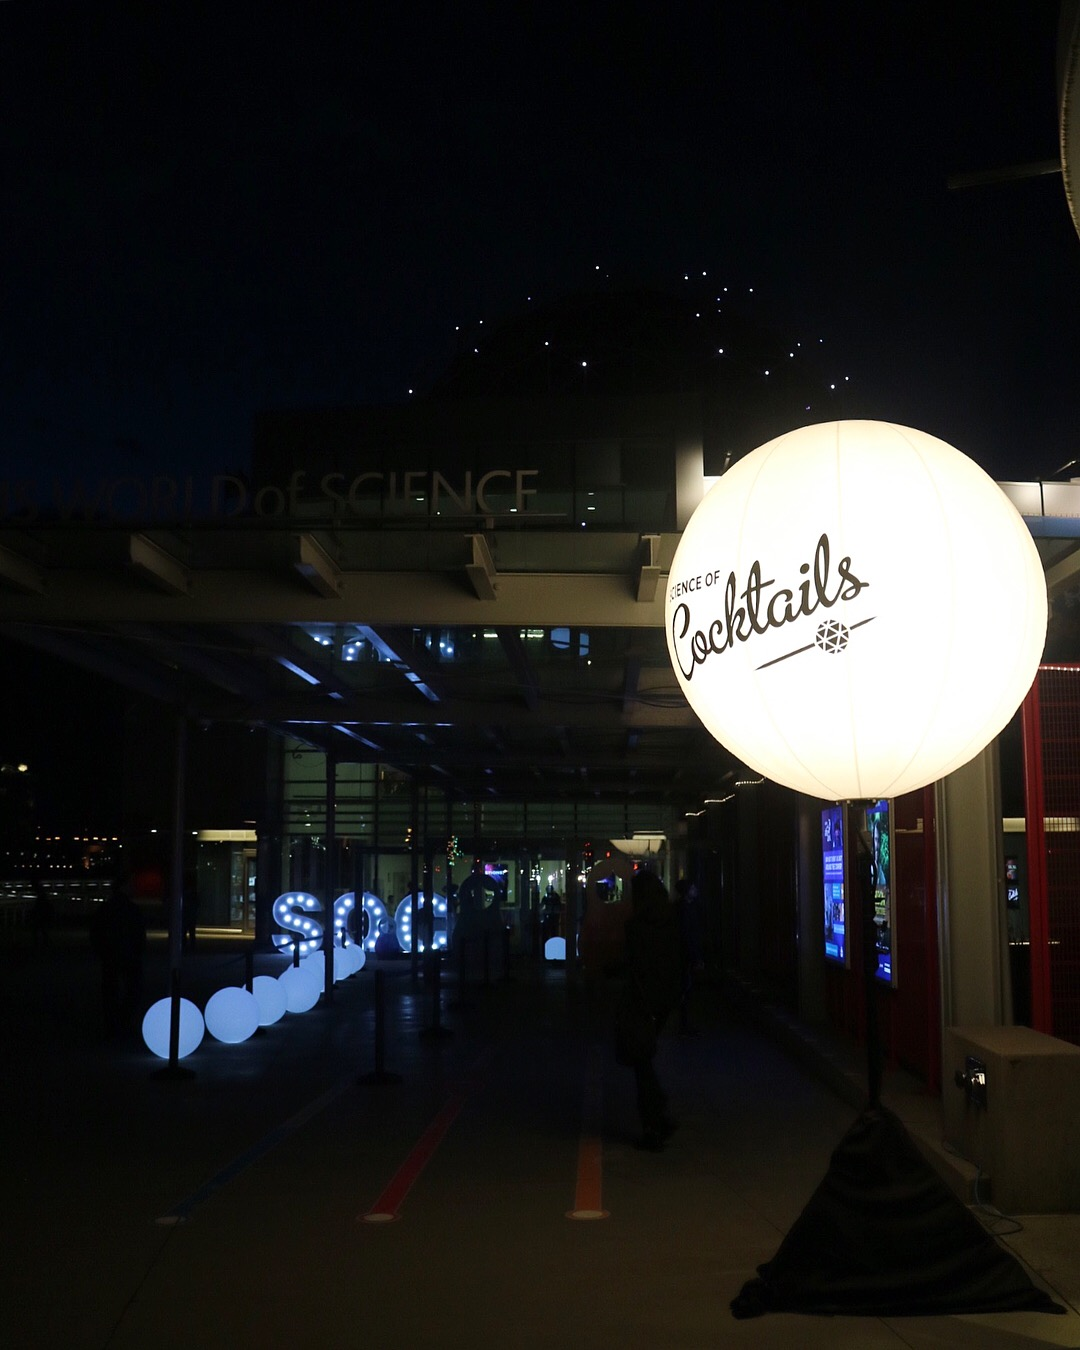 Science of Cocktails 2018 at Science World